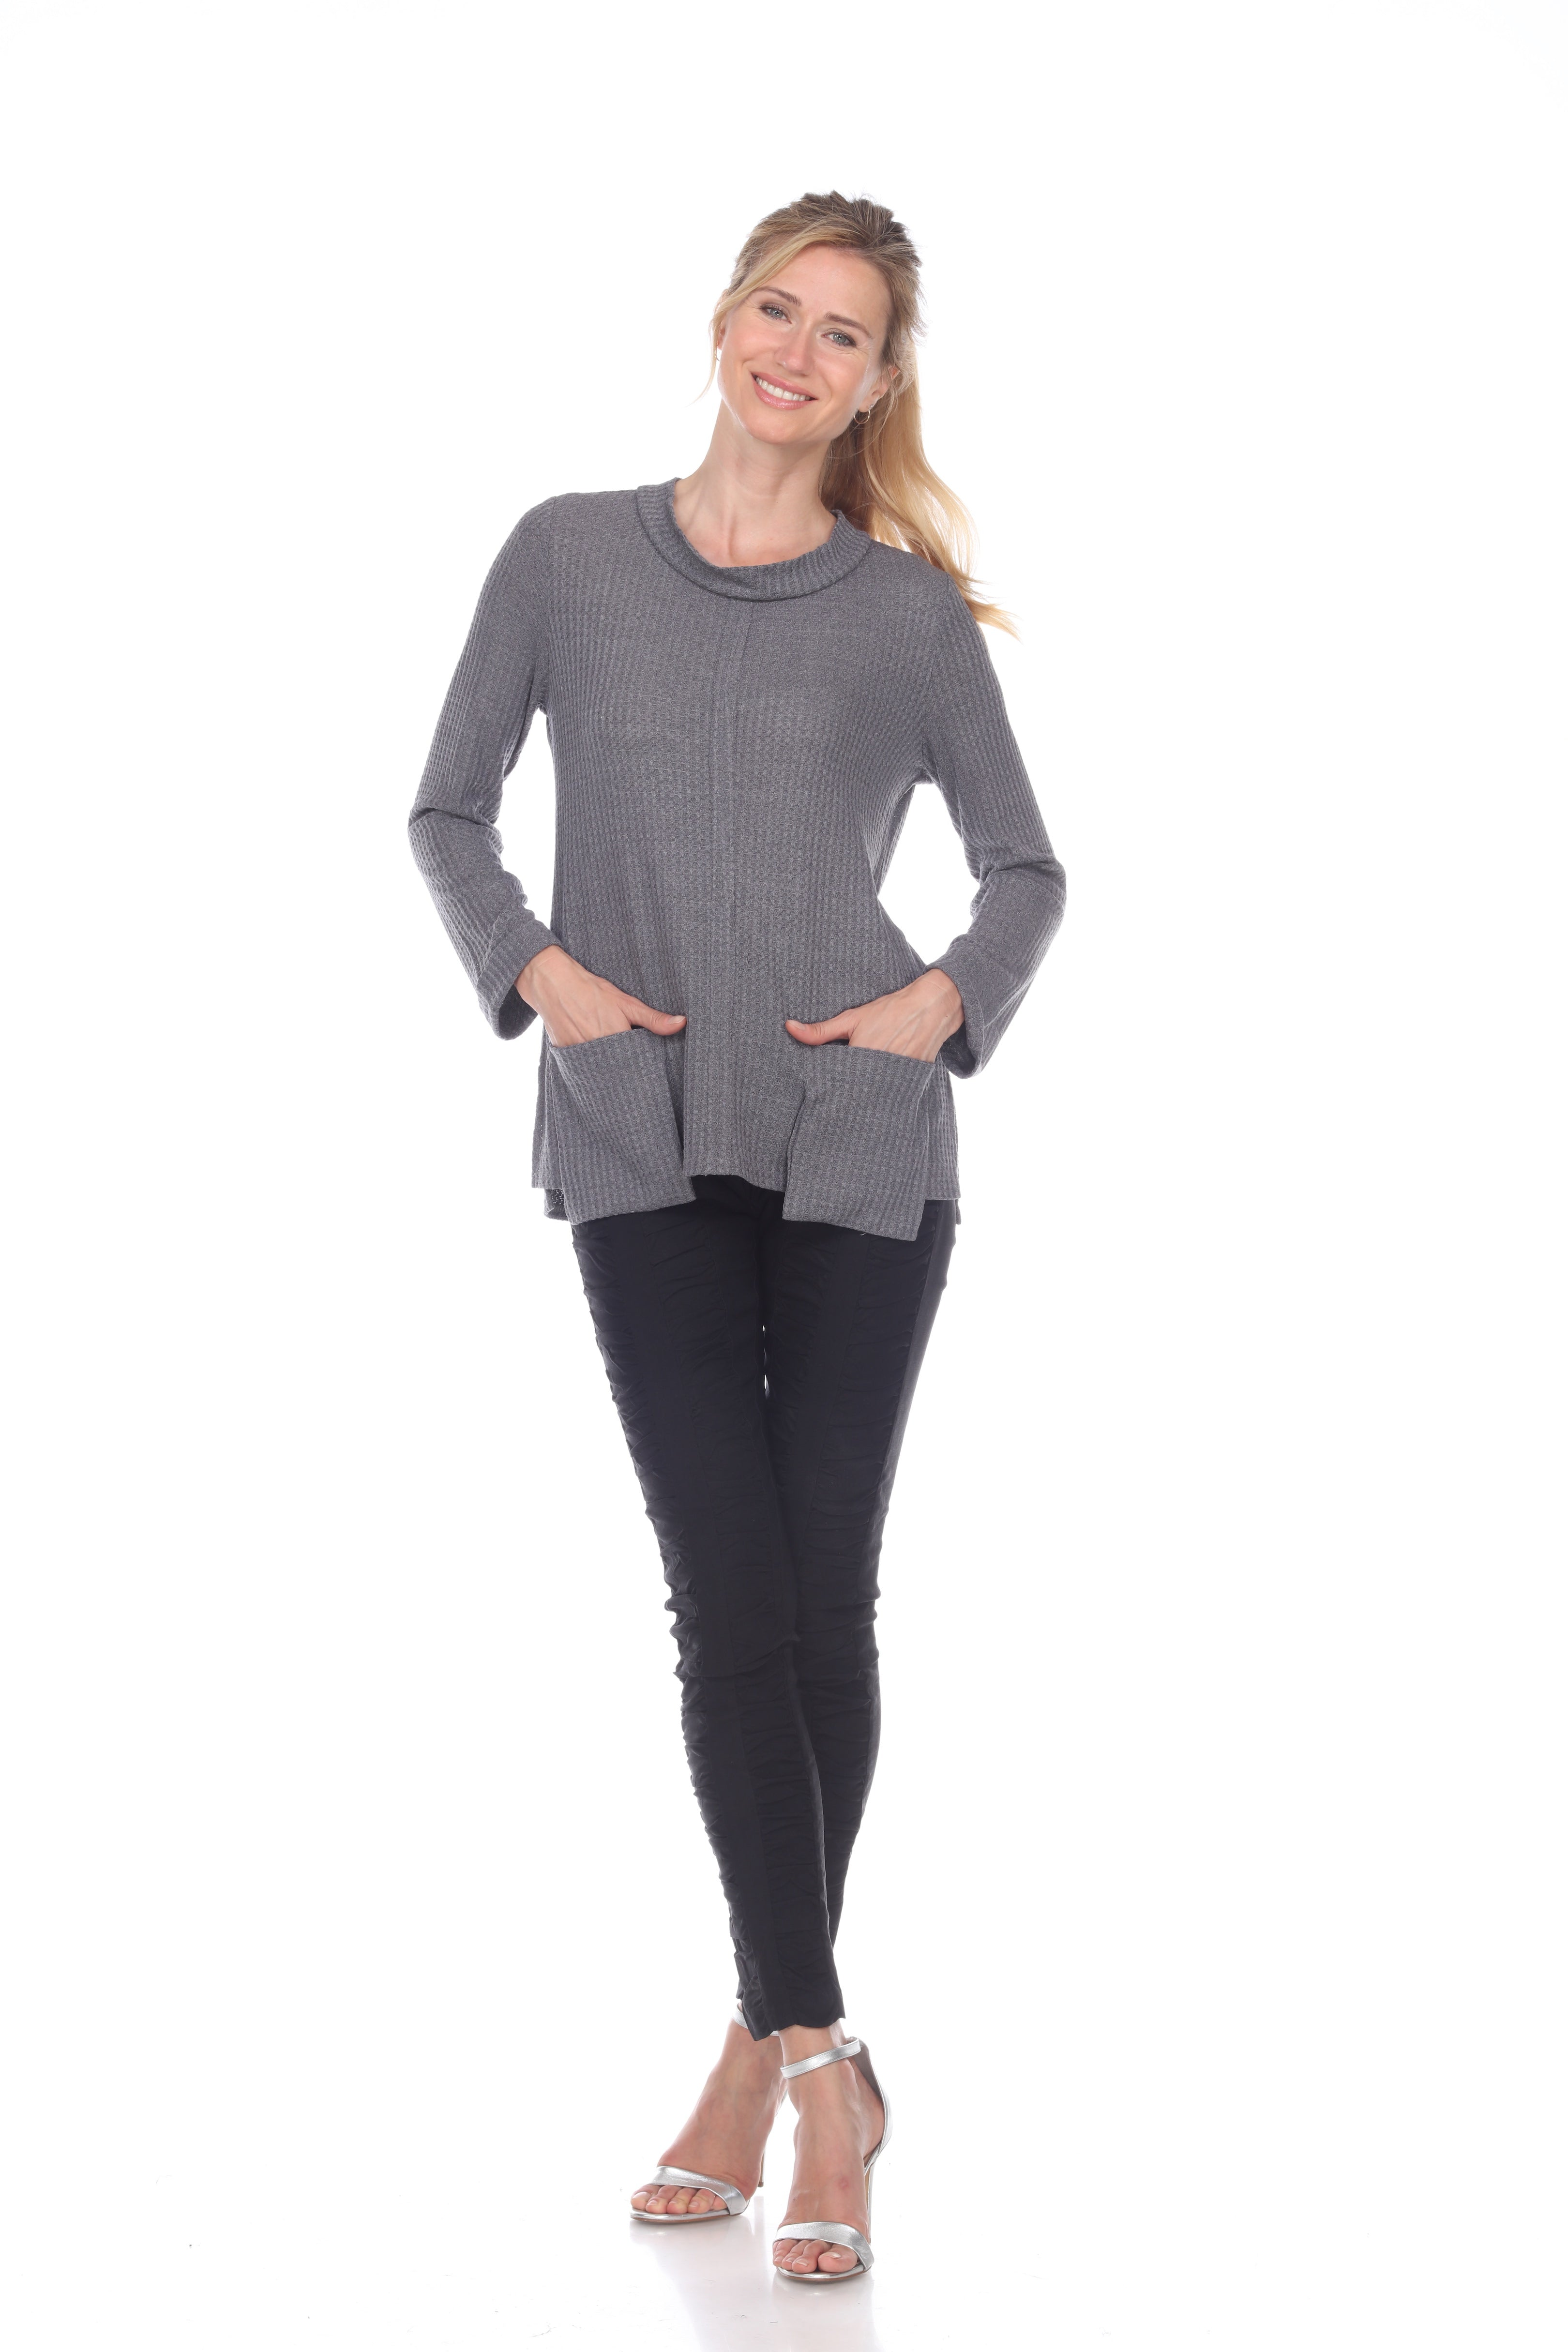 Sweater with Two Front Pockets - Gray